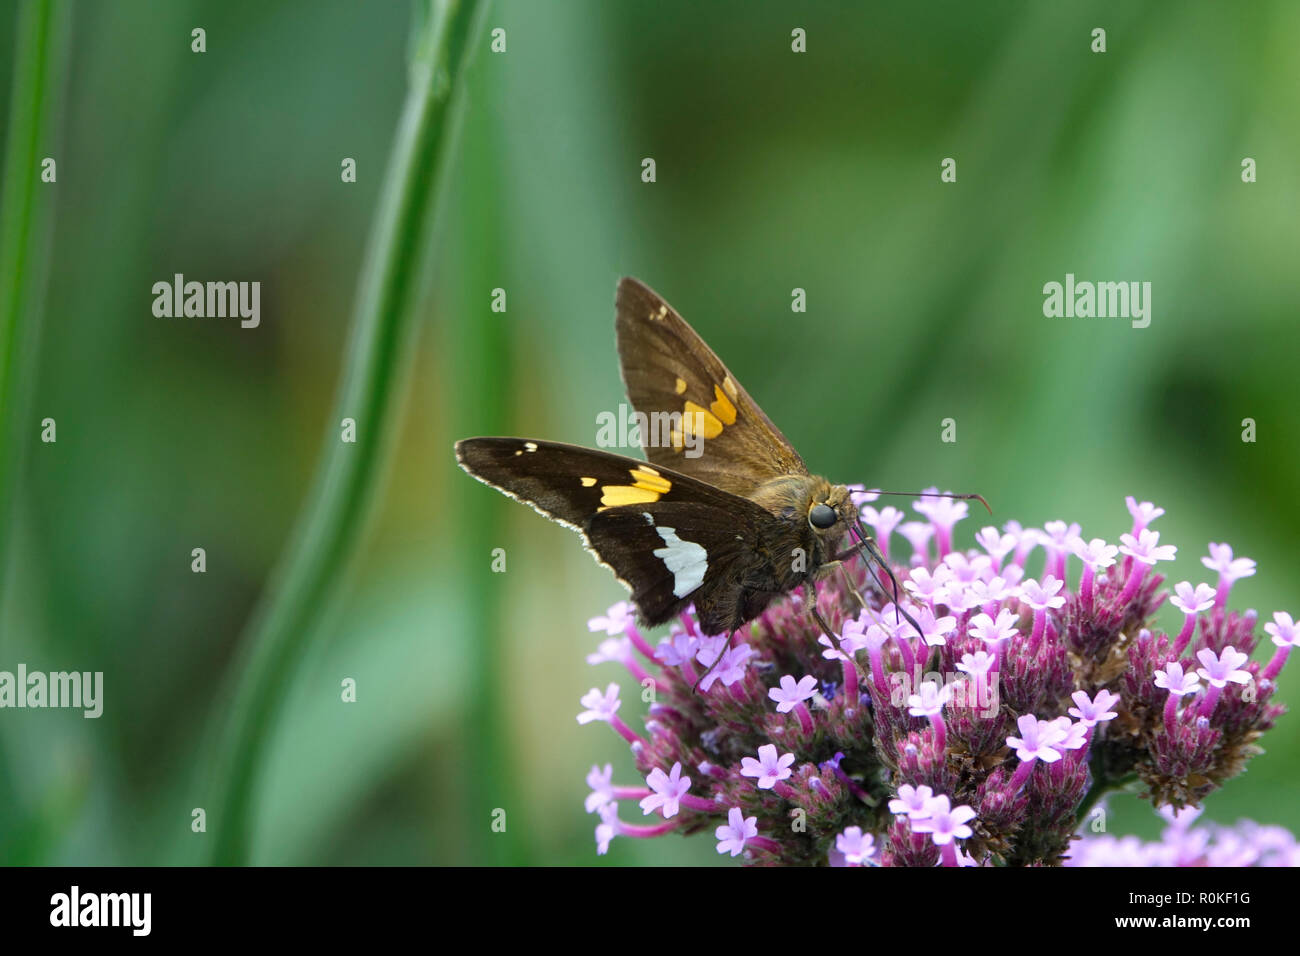 A Moth Fluttering in a Garden of Purple Flowers on a Sunny Day in Spring Stock Photo